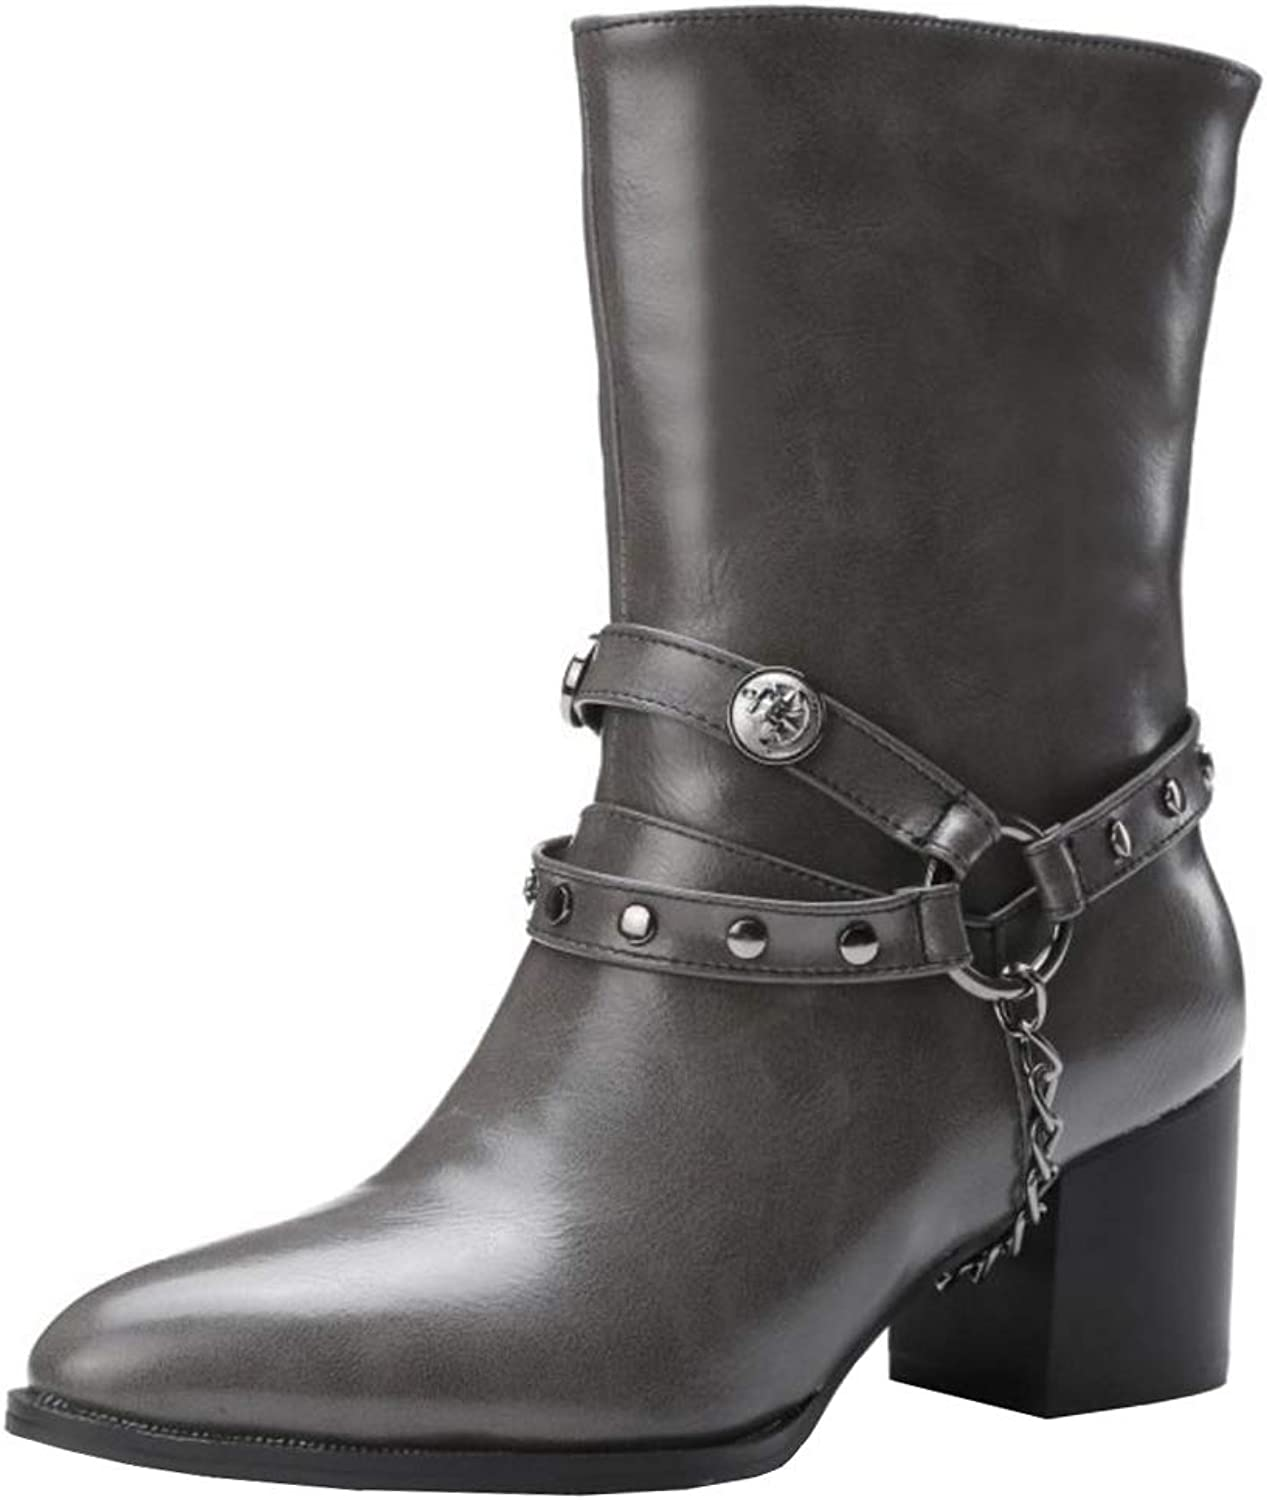 Melady Fashion Harness Boots Pull On